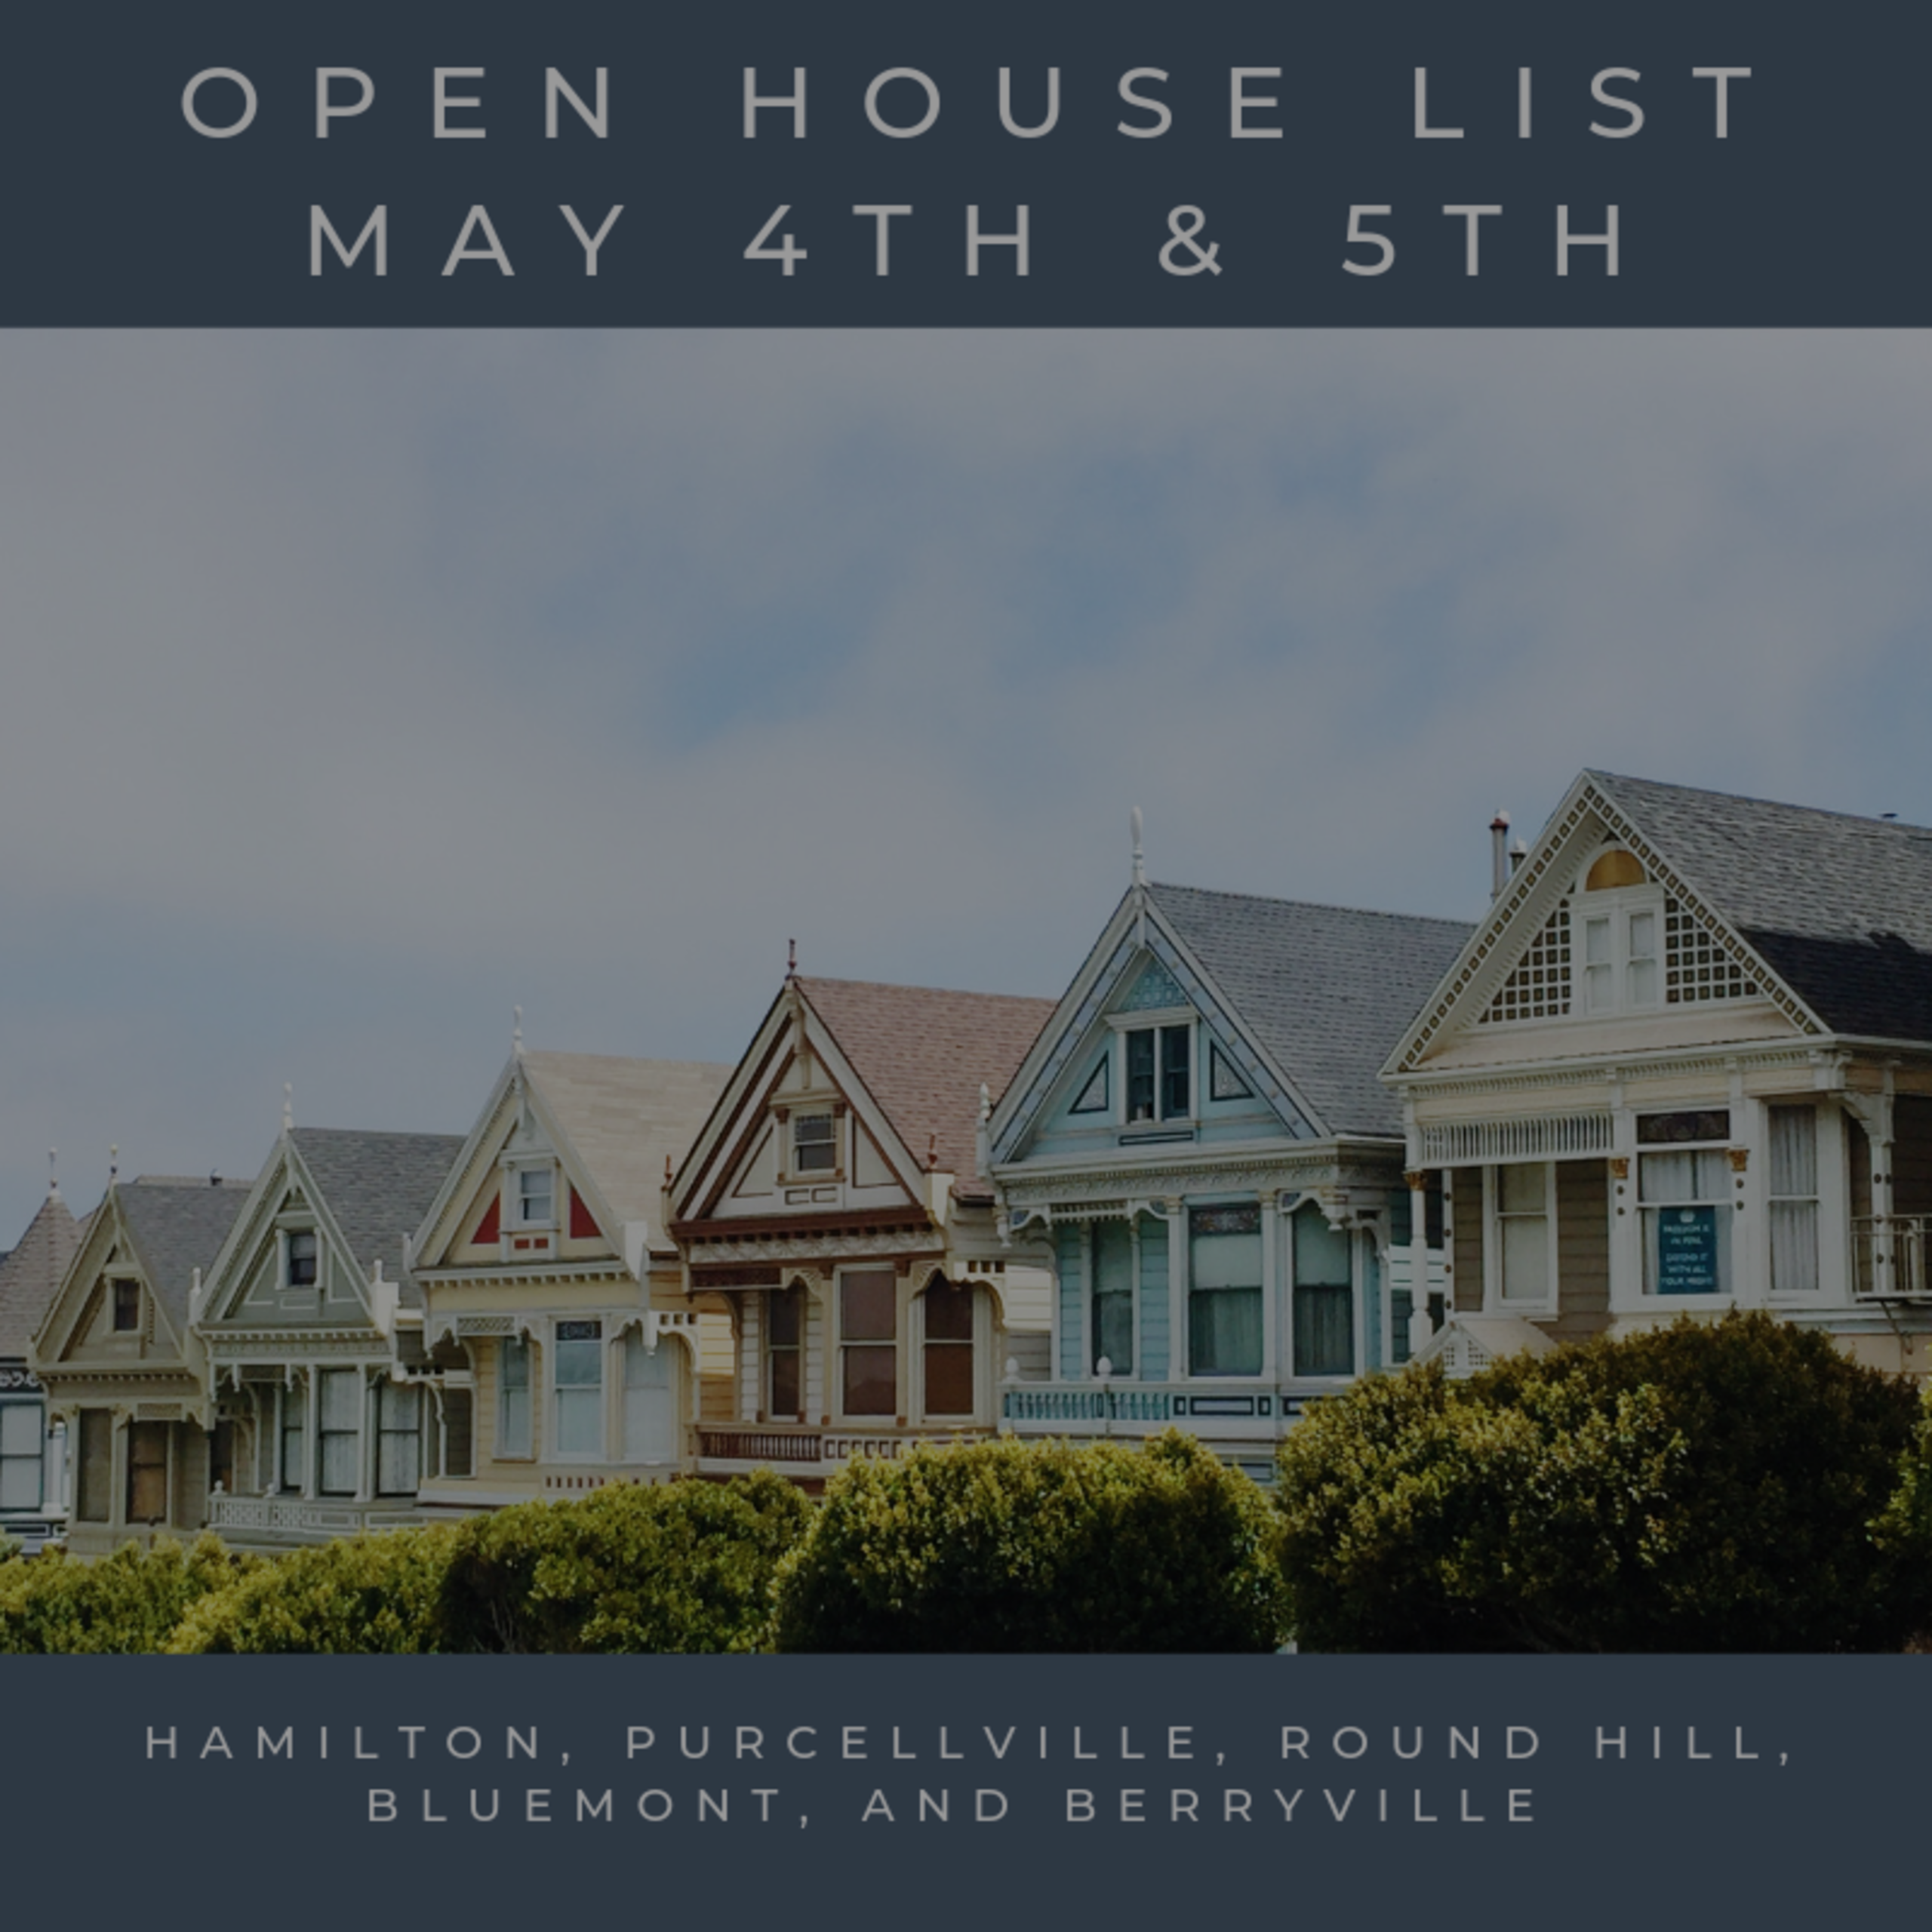 Open House List 5/4/19 – 5/5/19